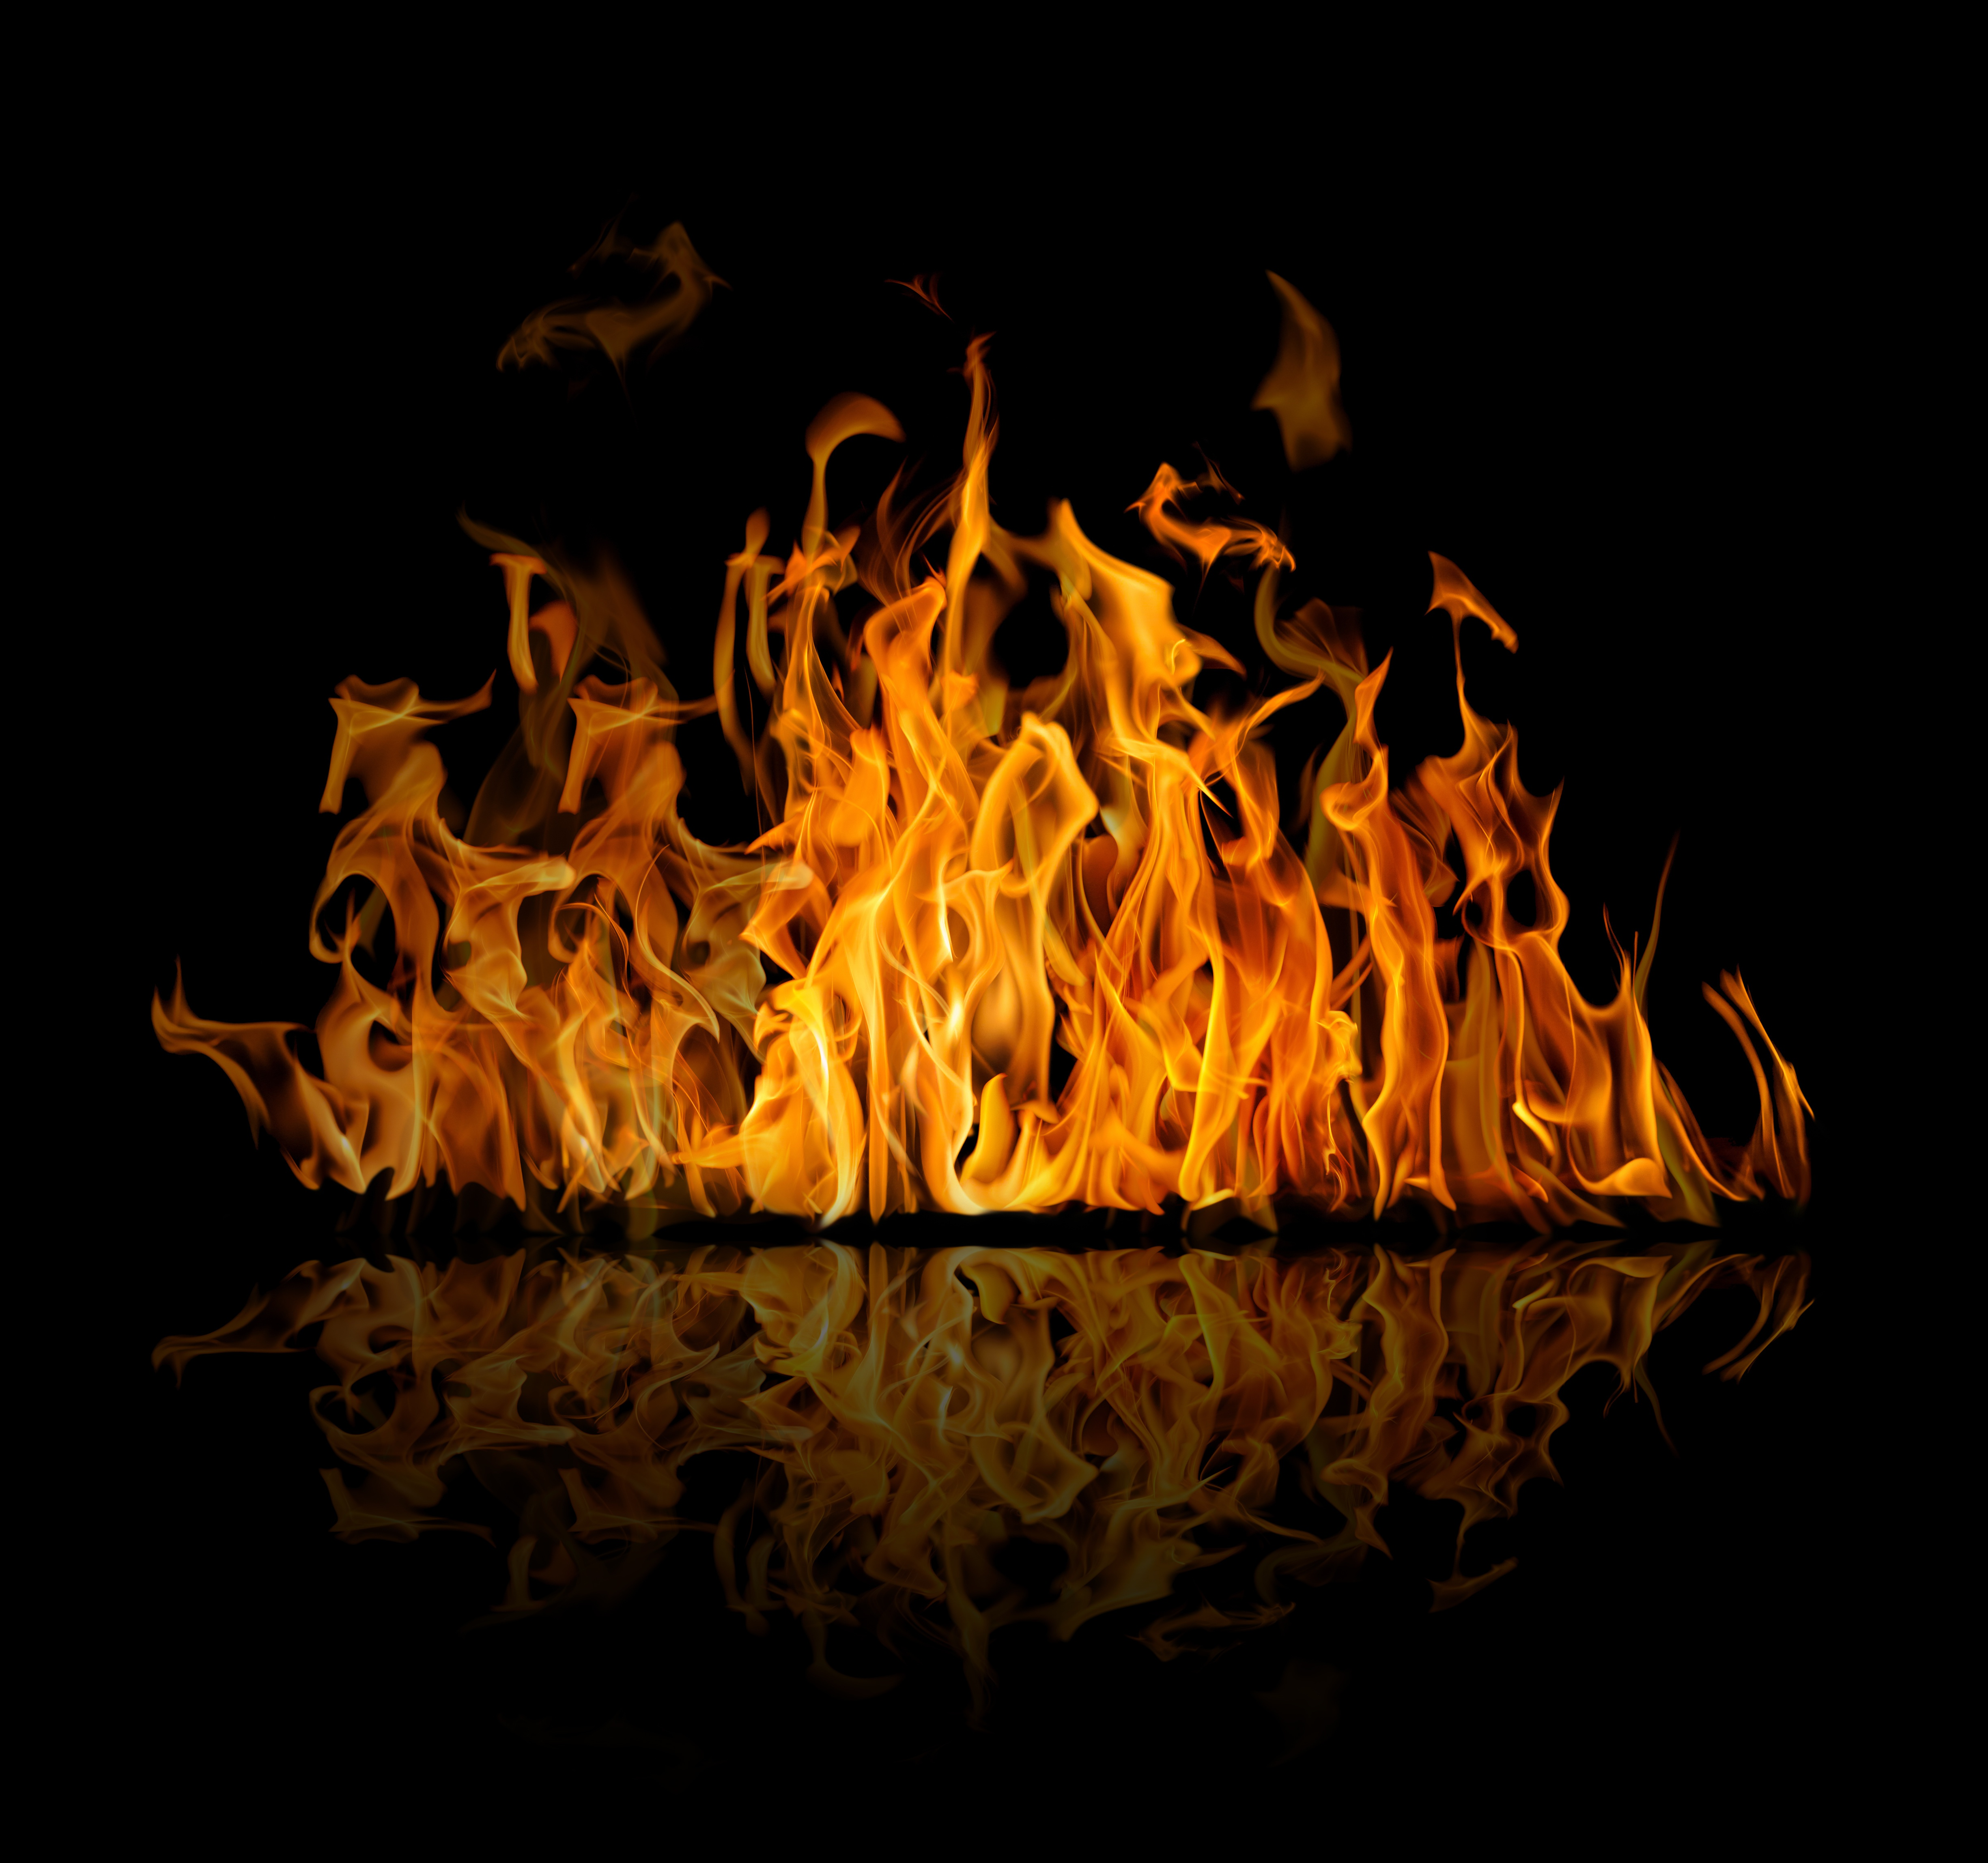 Download wallpaper reflection, background, fire, flame ...